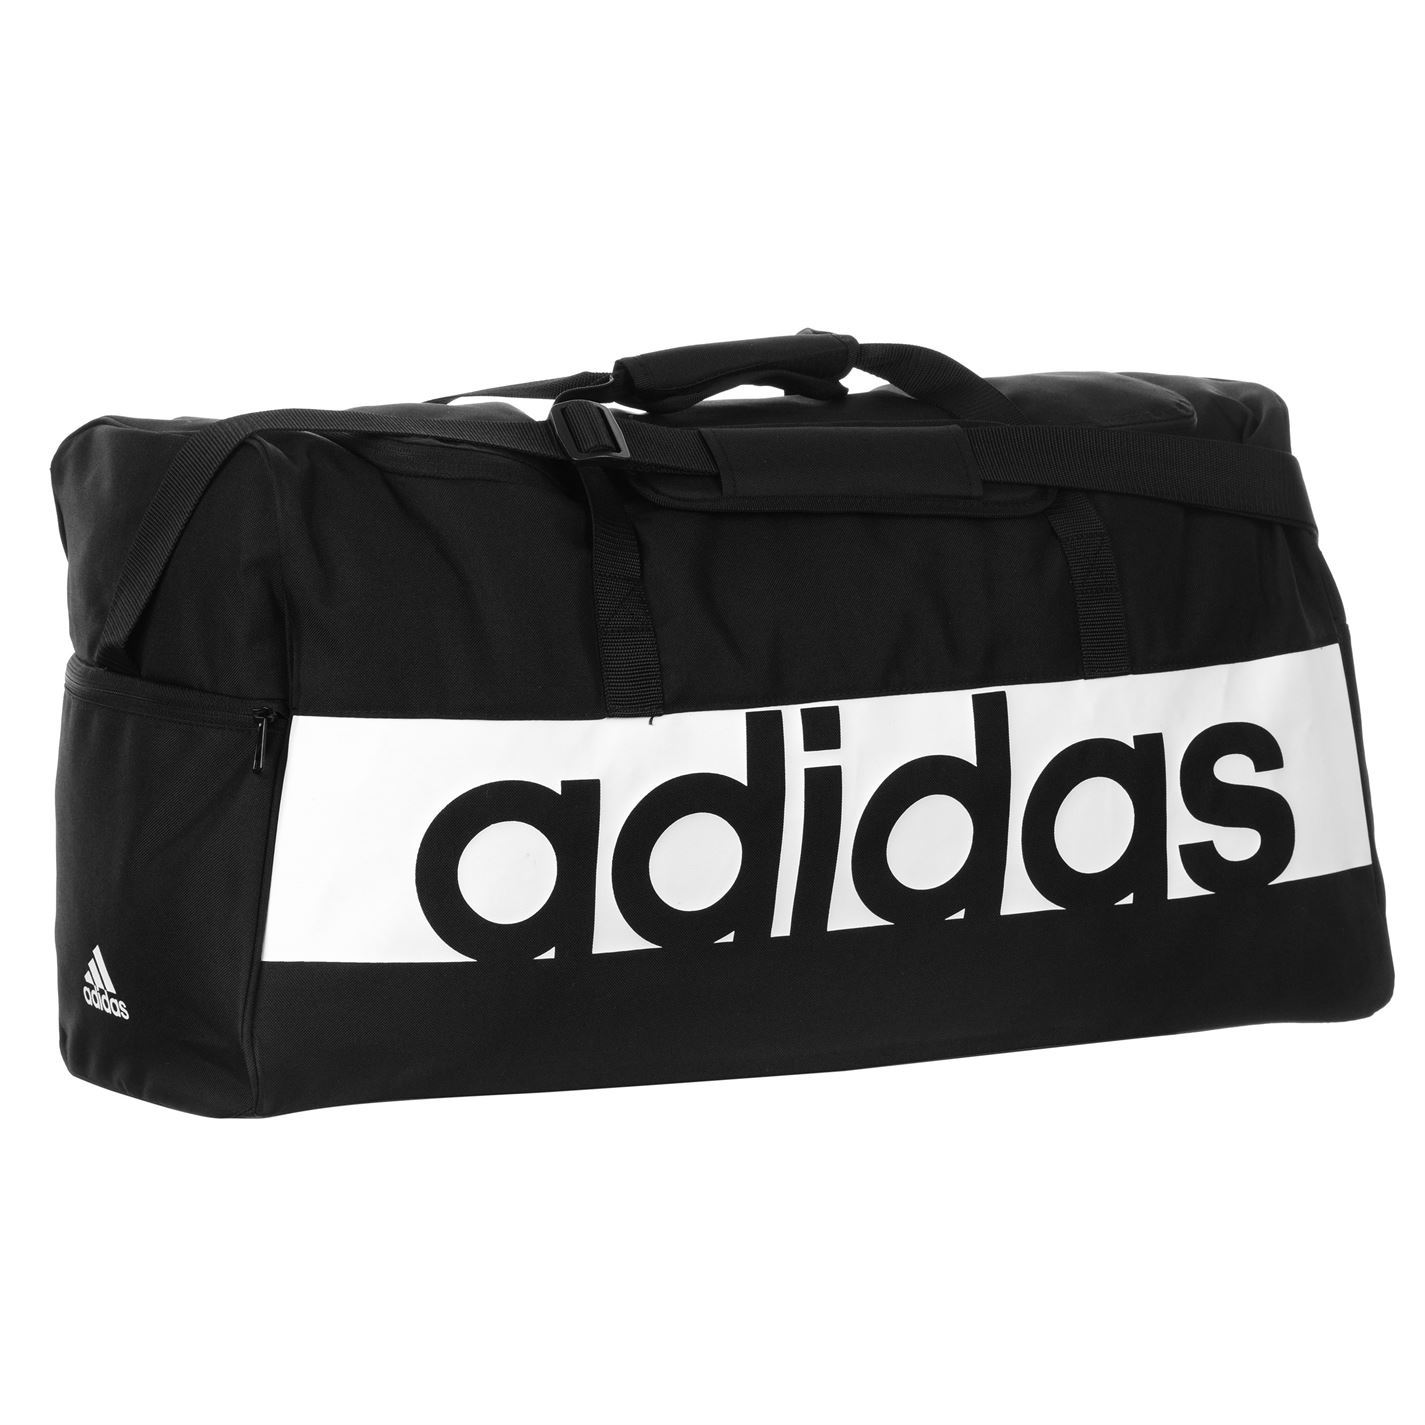 f4ae1a53afcf adidas Linear Performance Duffel Bag Large Black White Sports Gym Bag  Holdall